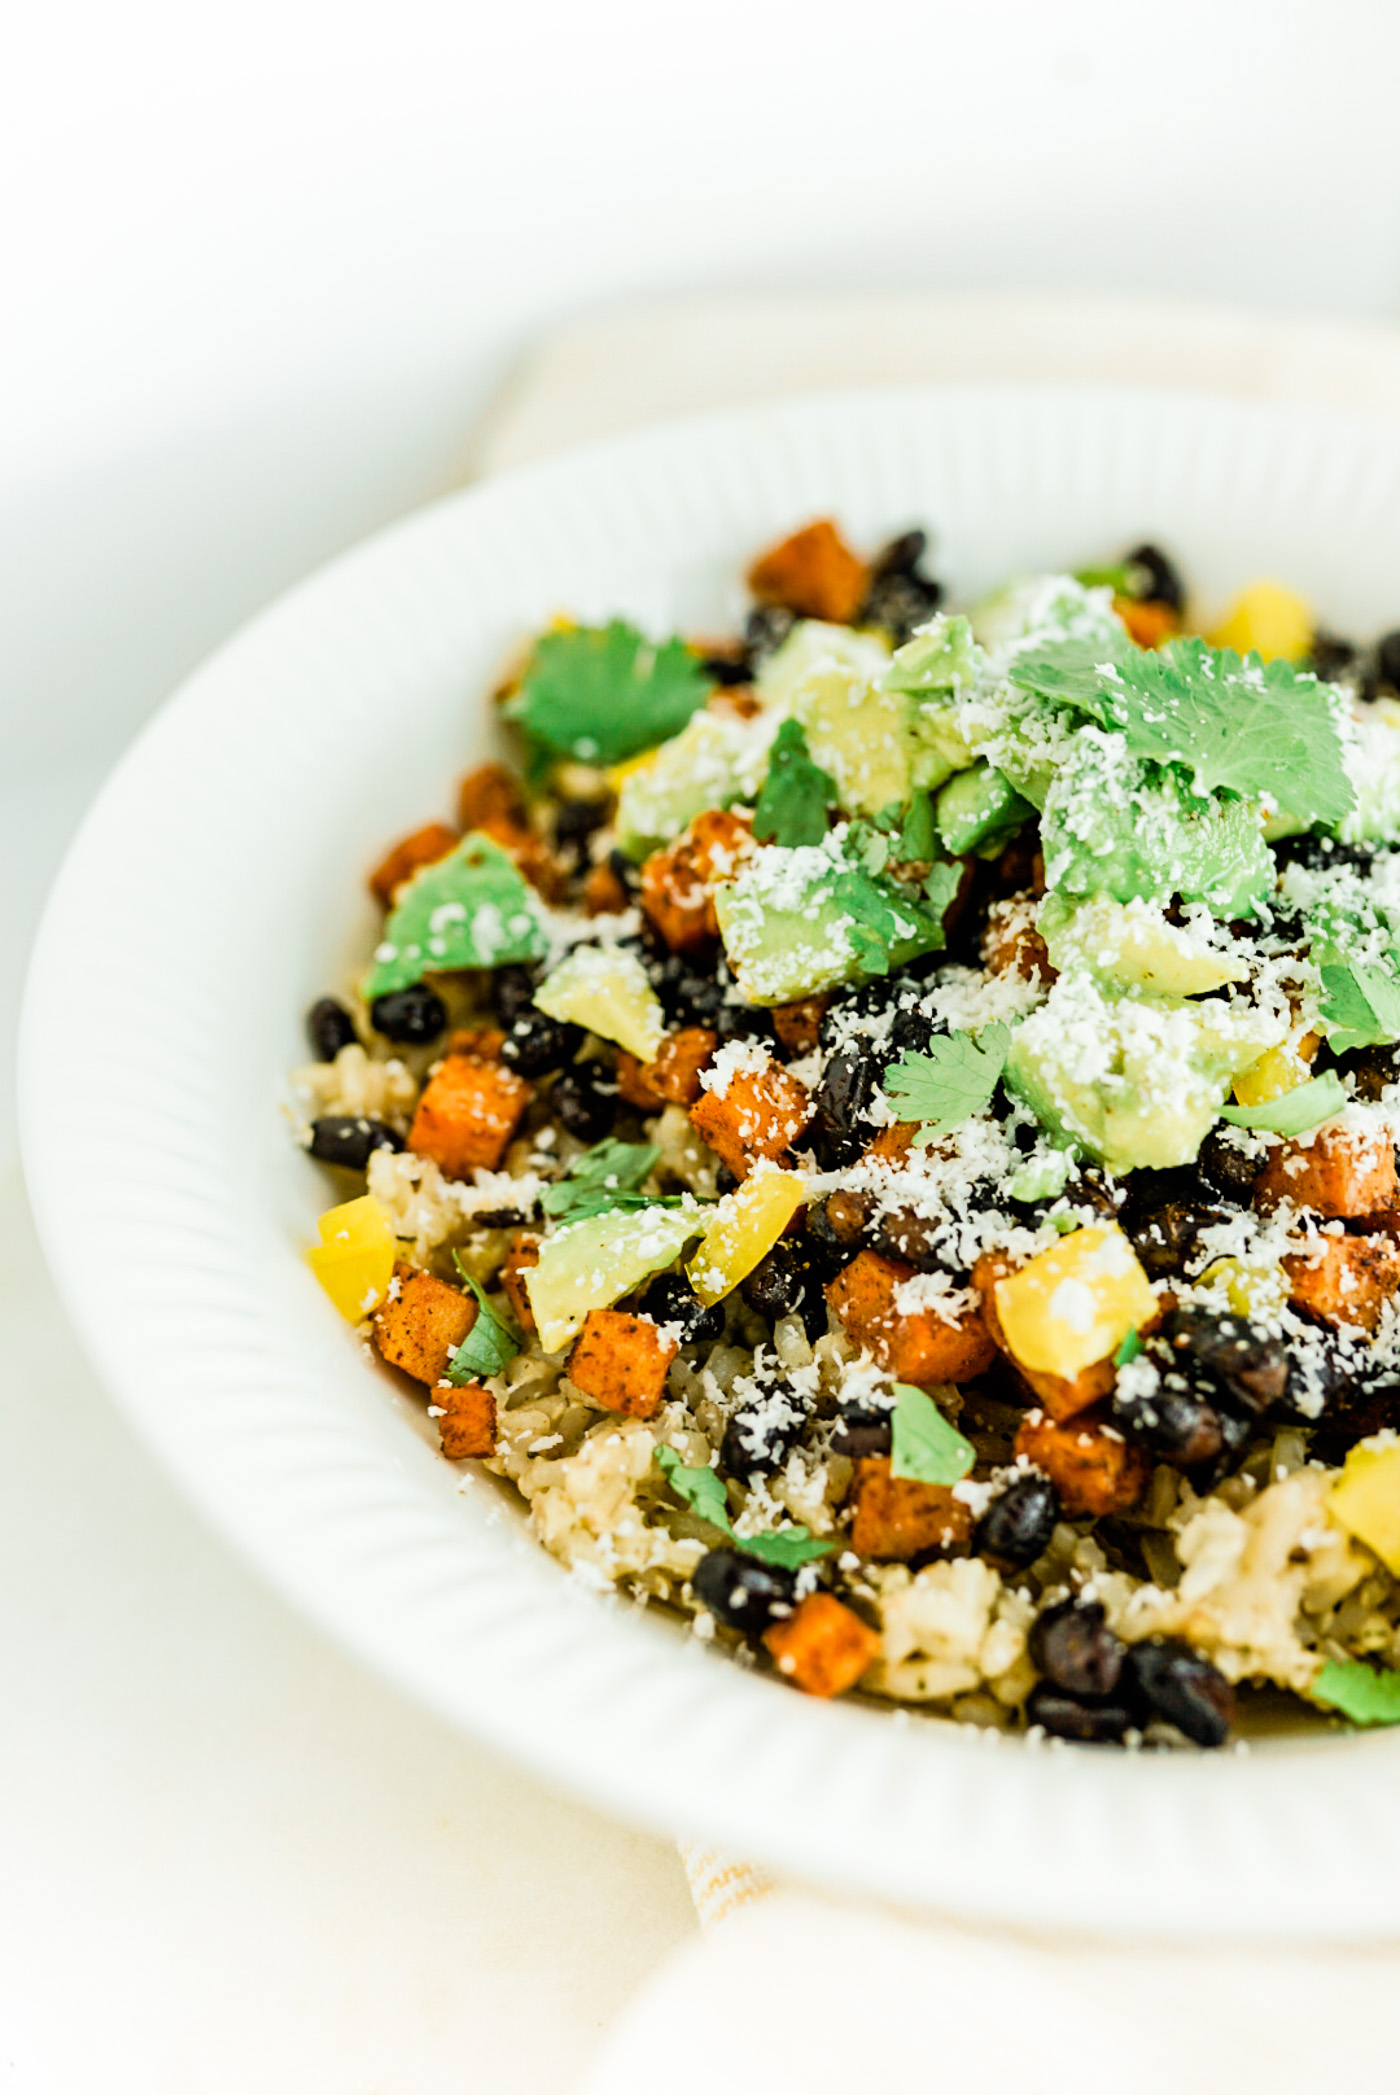 sweet potato black beans topped with avocado in white bowl on light yellow dish towel